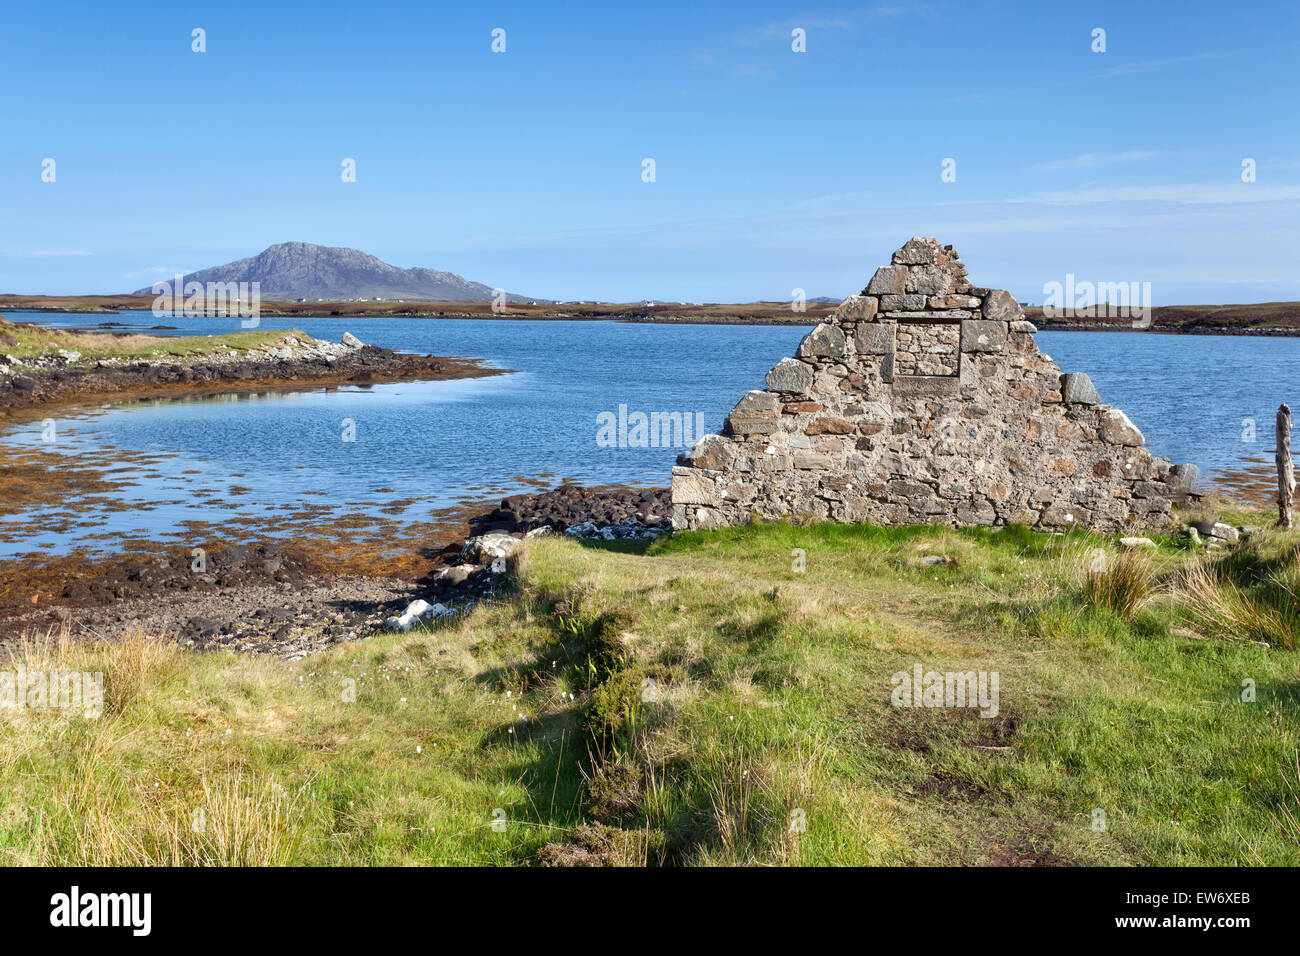 Loch Langass, Isle of North Uist, Outer Hebrides, Scotland - Stock Image